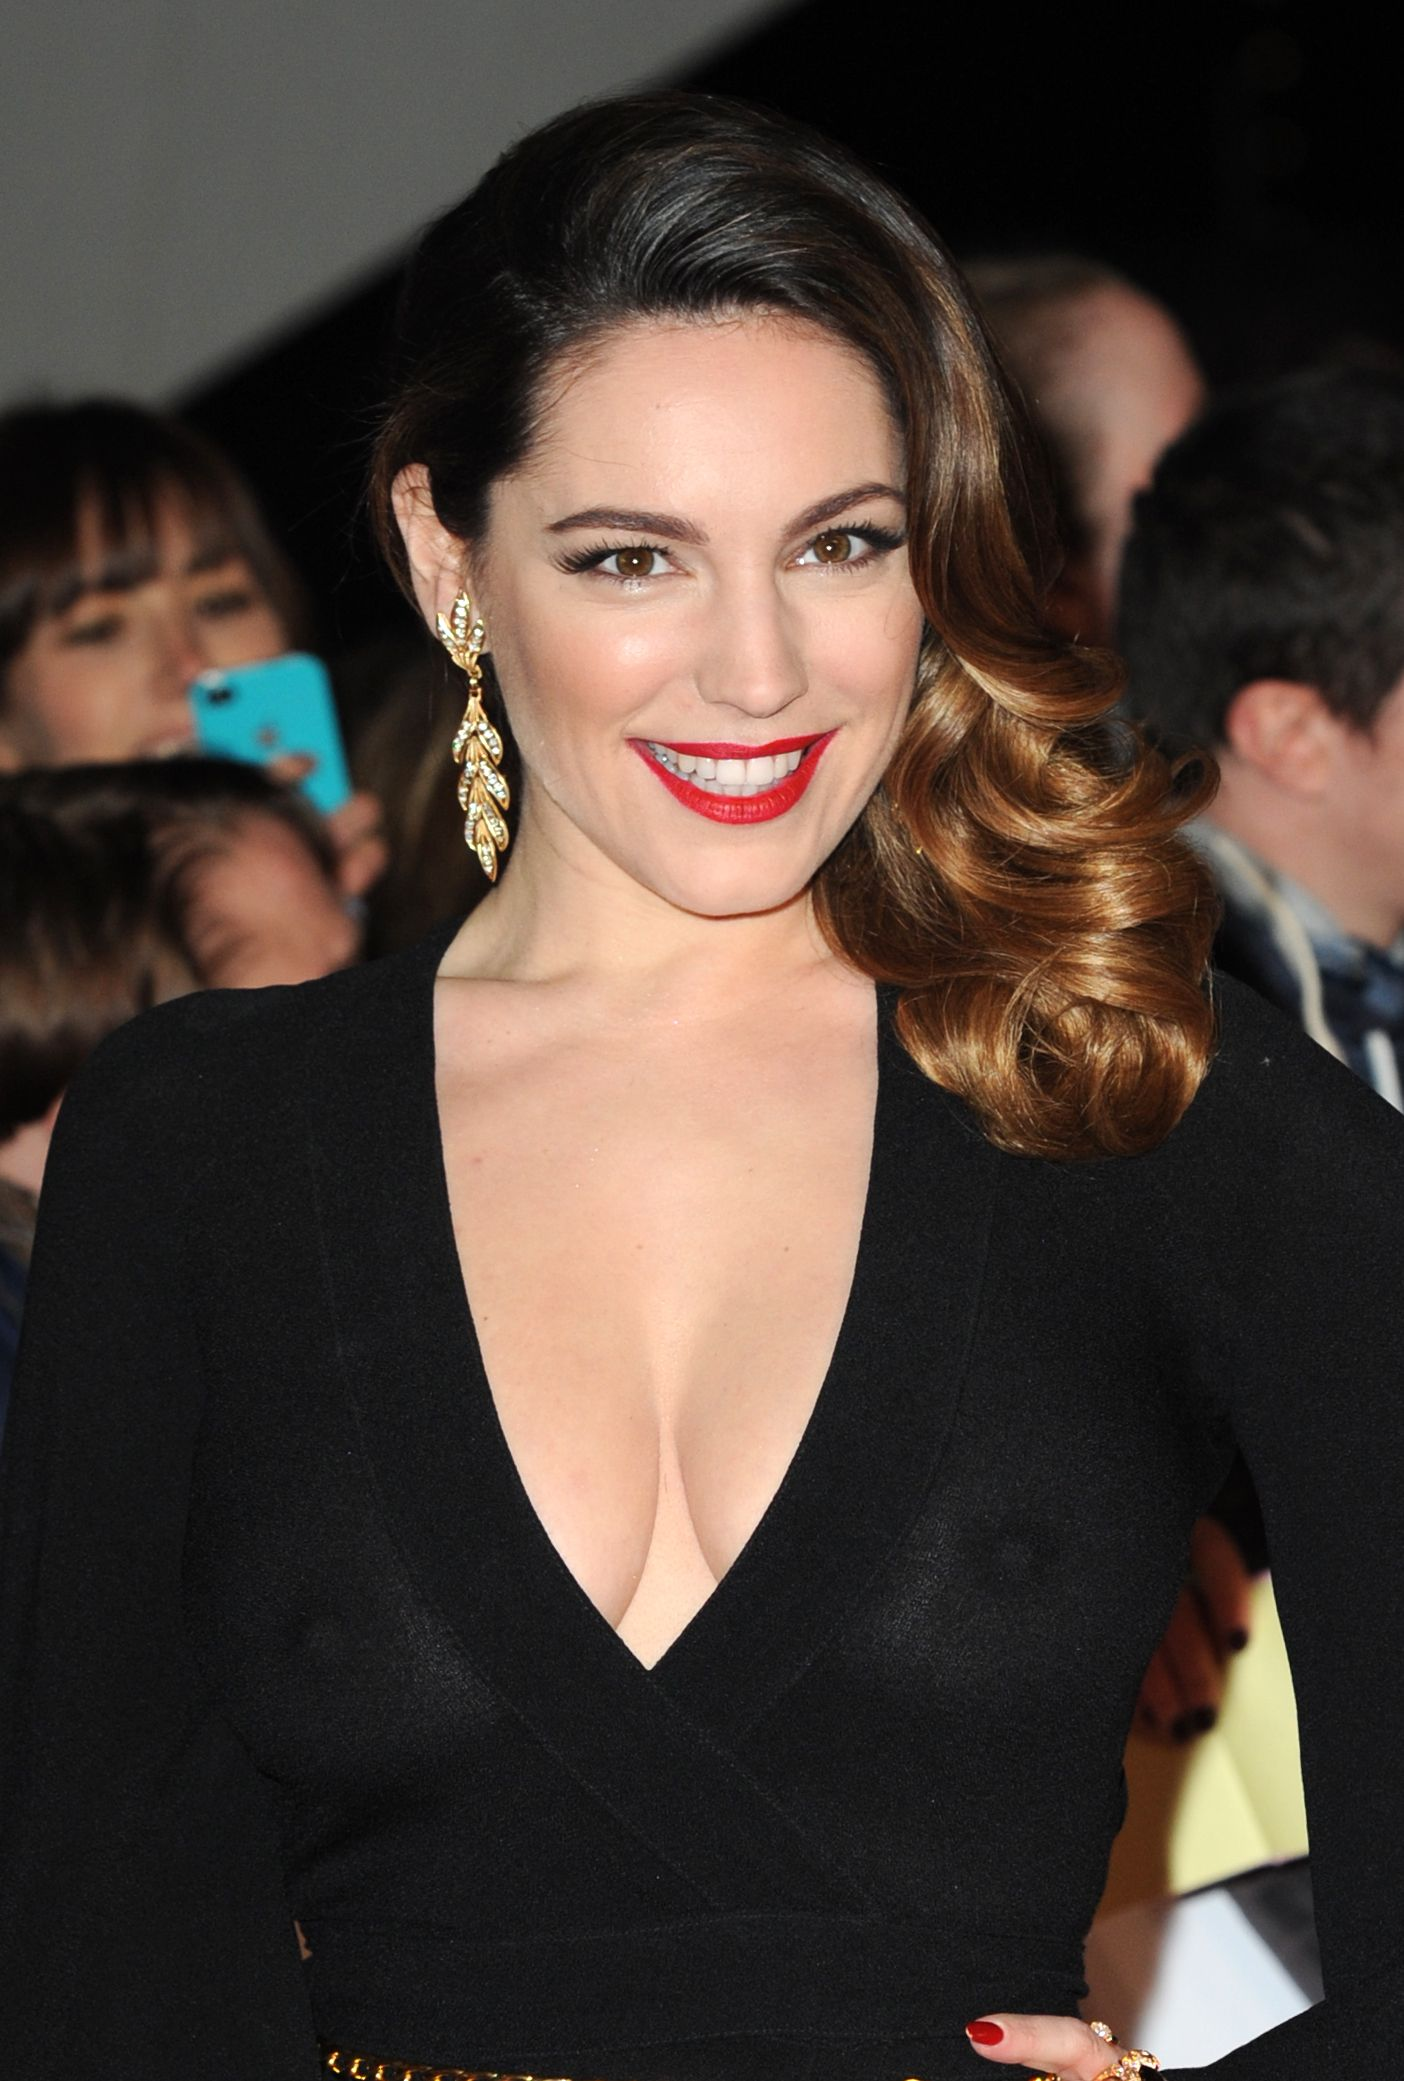 See Thru Tv Kelly Brook See Through National Television Awards In London